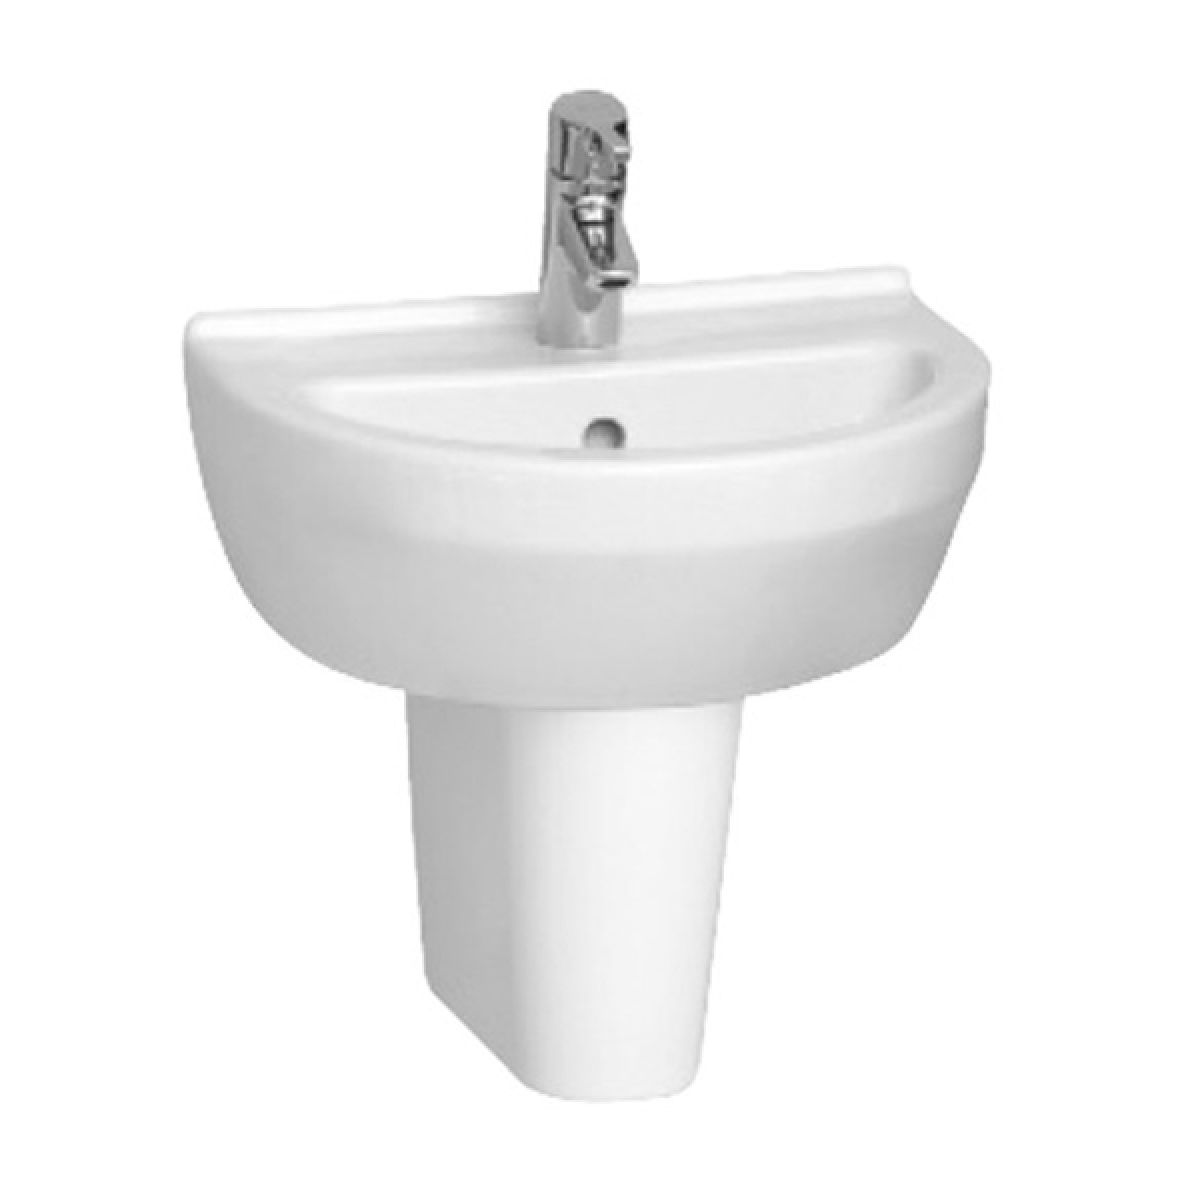 Vitra S50 1 Tap Hole Round Basin with Semi Pedestal 500mm